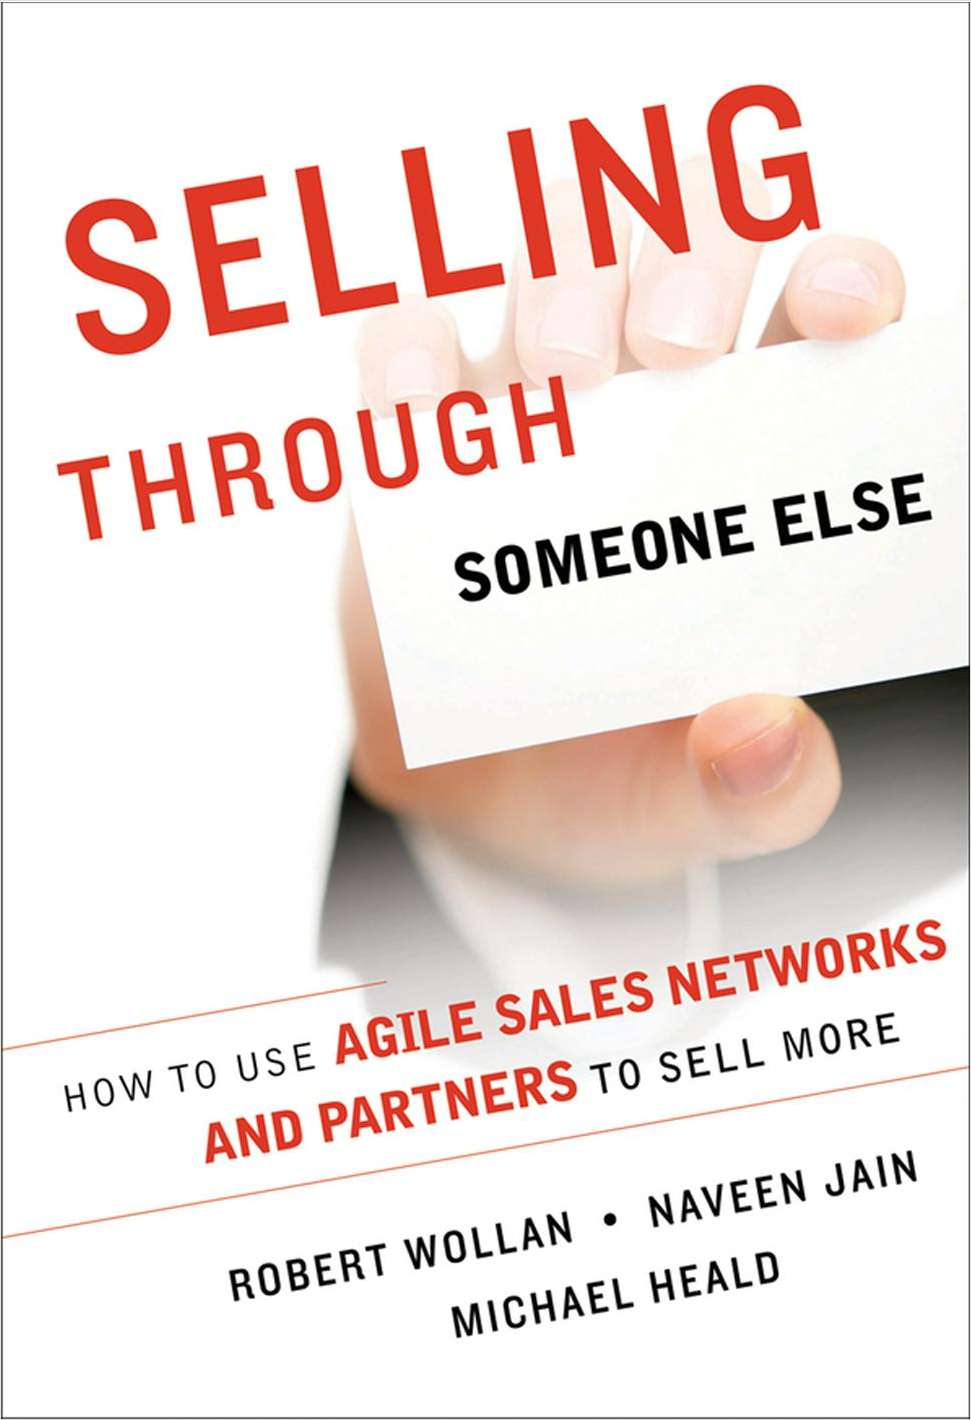 Selling Through Someone Else: How to Use Agile Sales Networks and Partners to Sell More--Free Sample Chapter